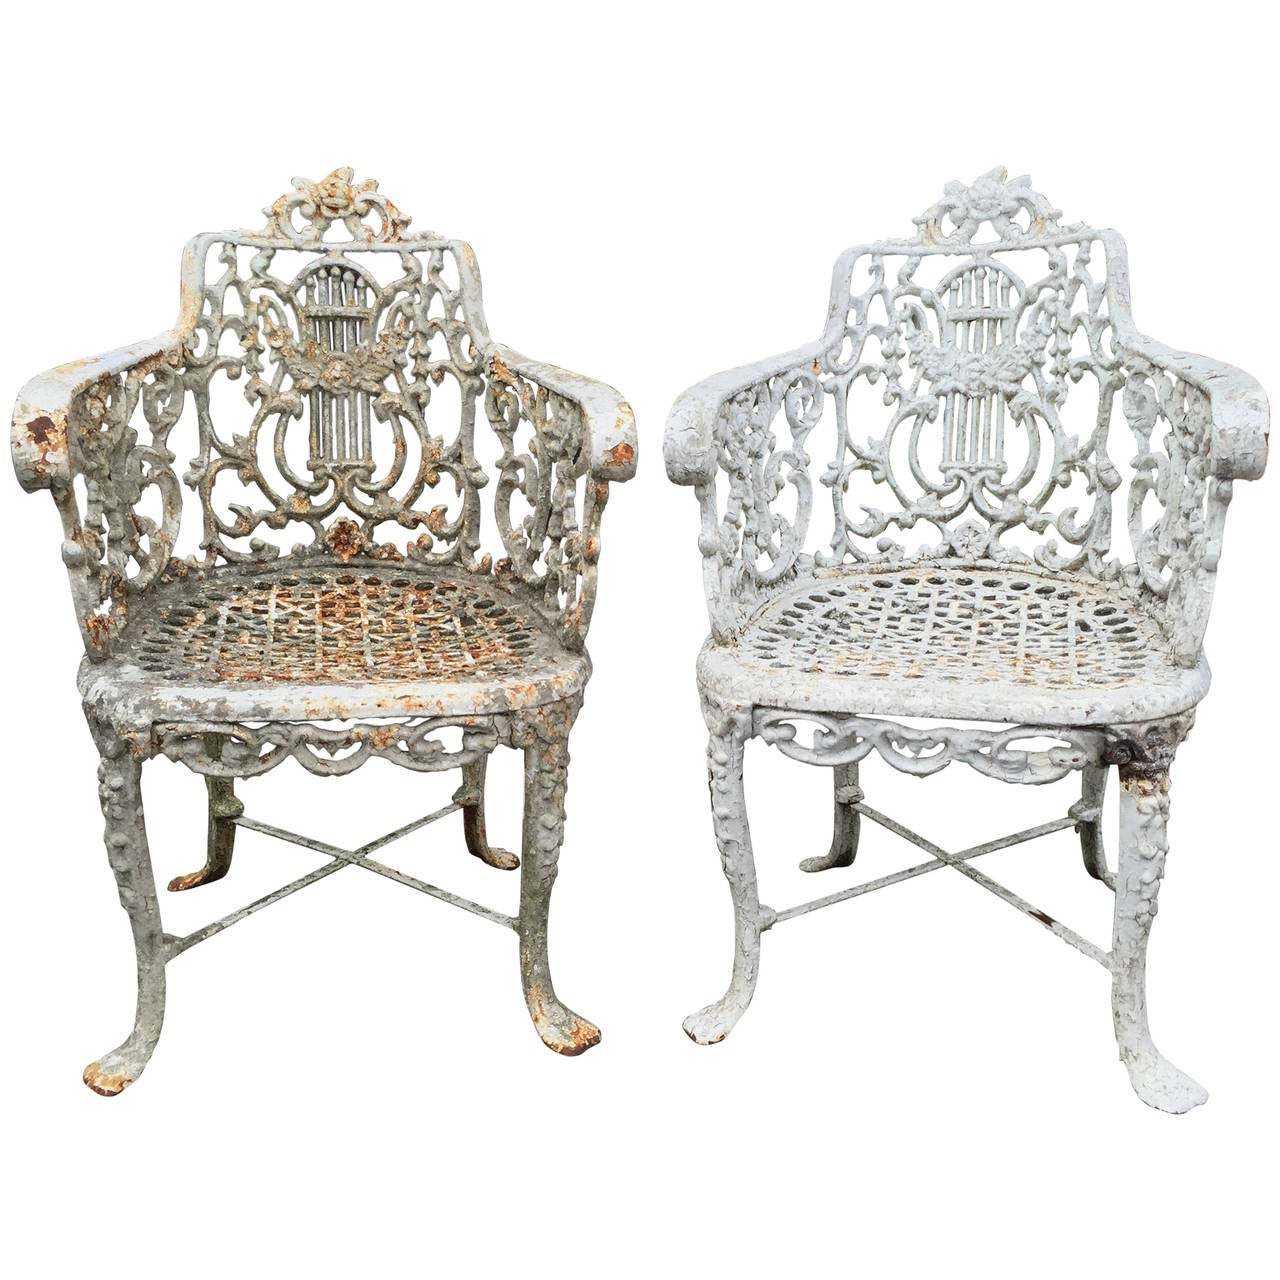 Pair Of English Cast Iron Garden Chairs Late 19th Century At 1stdibs